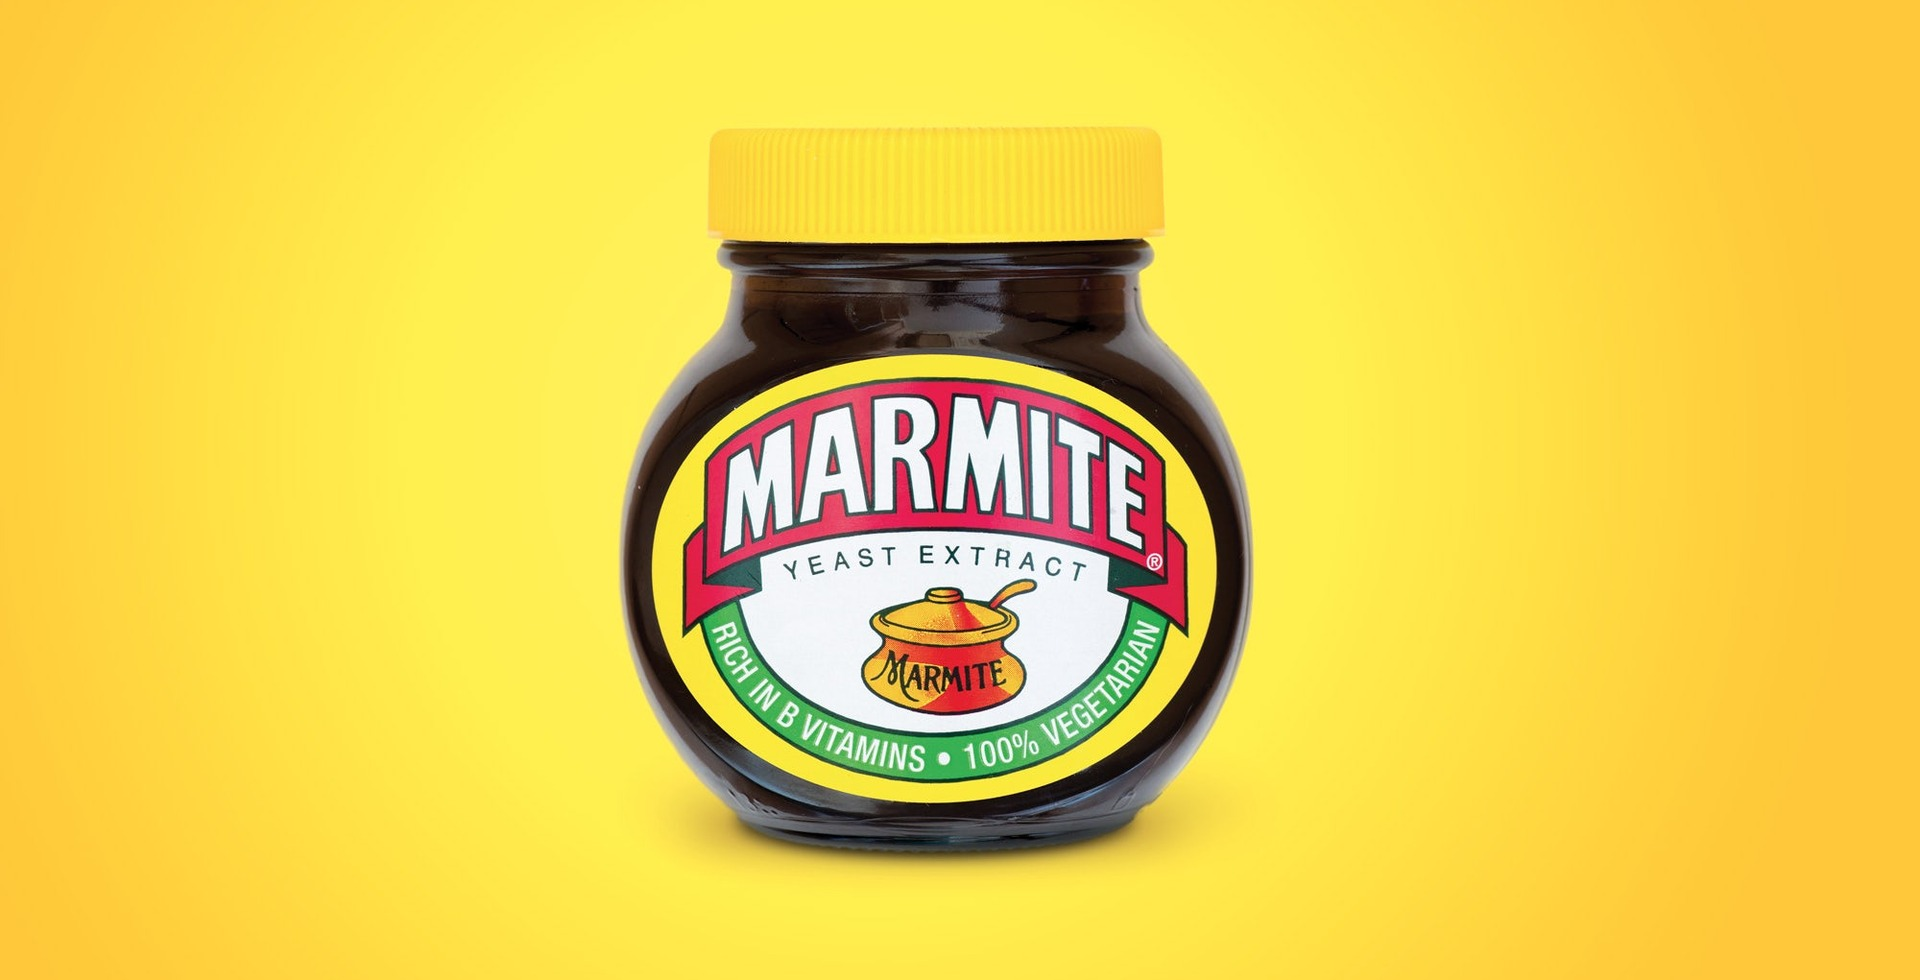 Love it or hate it – Marmite has positive effects on brain function